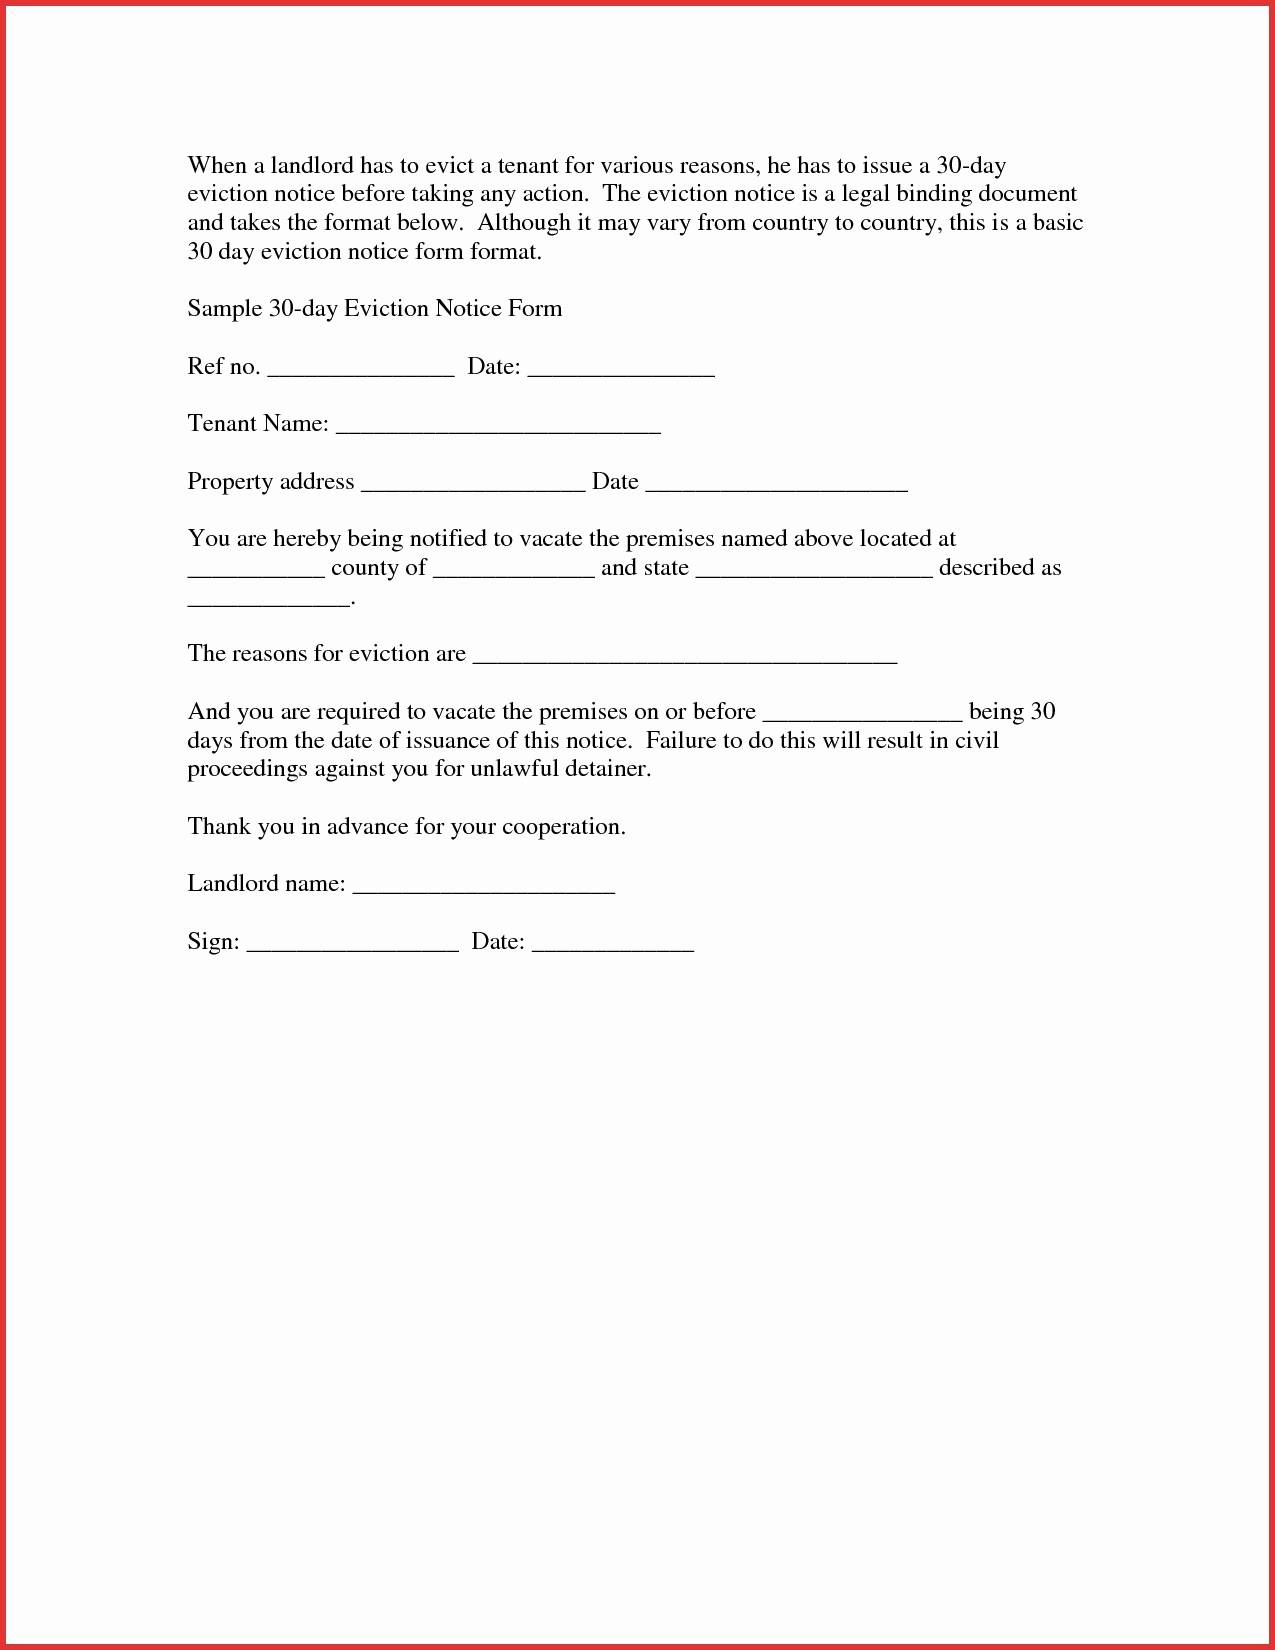 Free Tenant Eviction Letter Template - Tenant Eviction Letter Template Best Free Eviction Notice